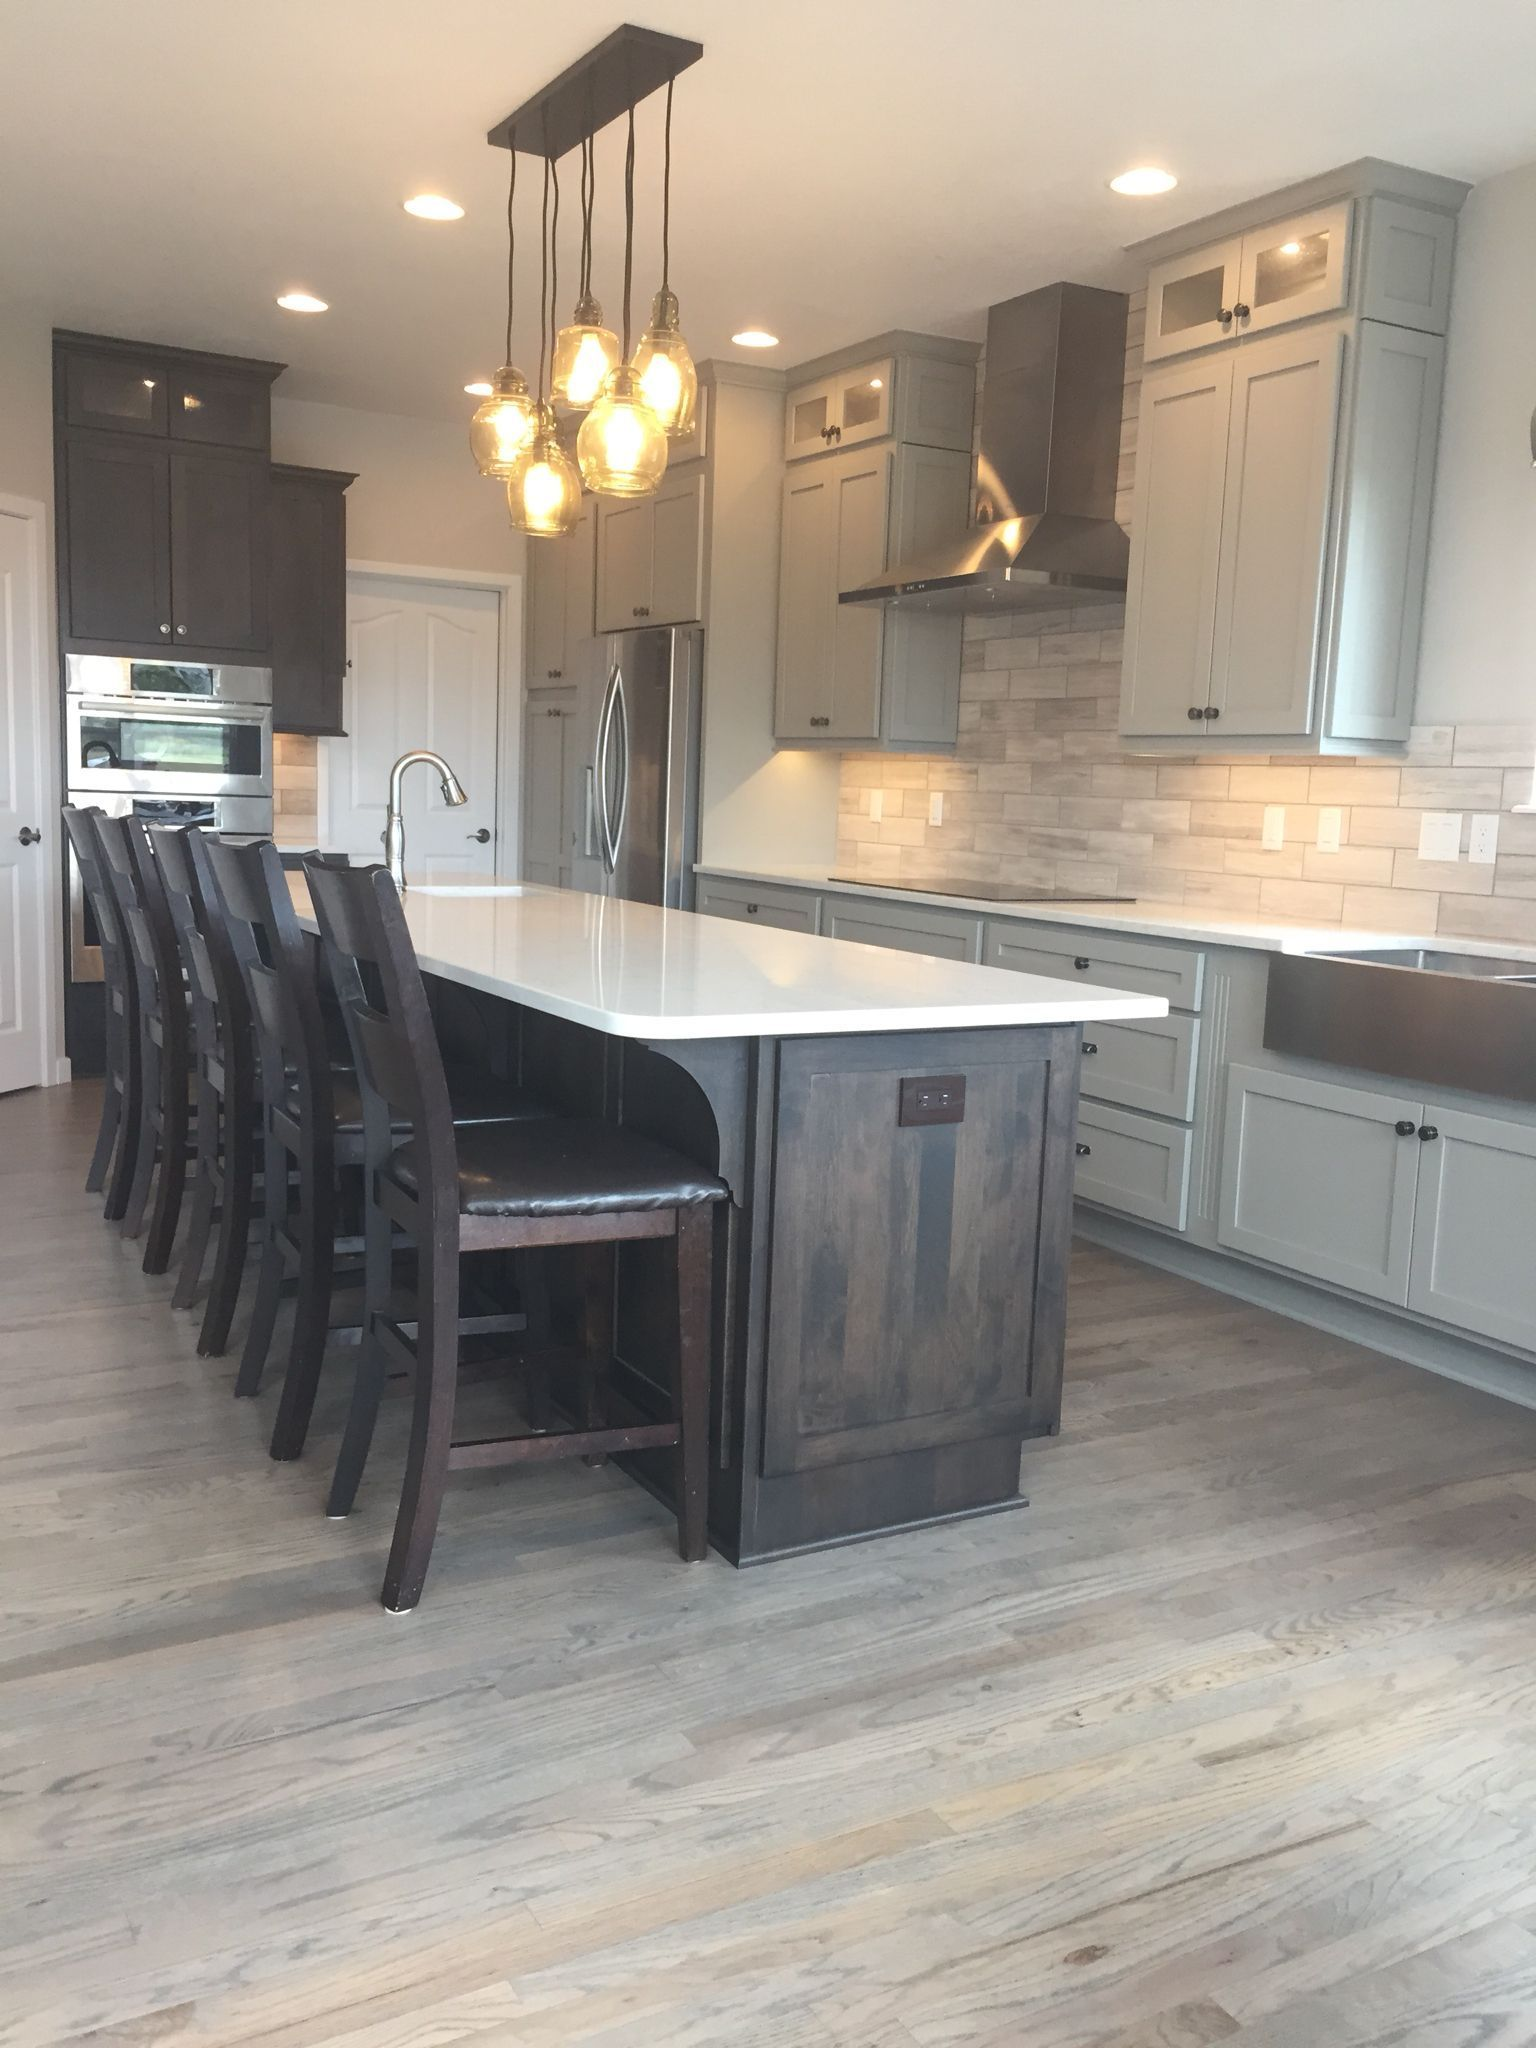 Kitchen remodel. Cabinets-Custom Cupboards in mocha and Boulder grey ...